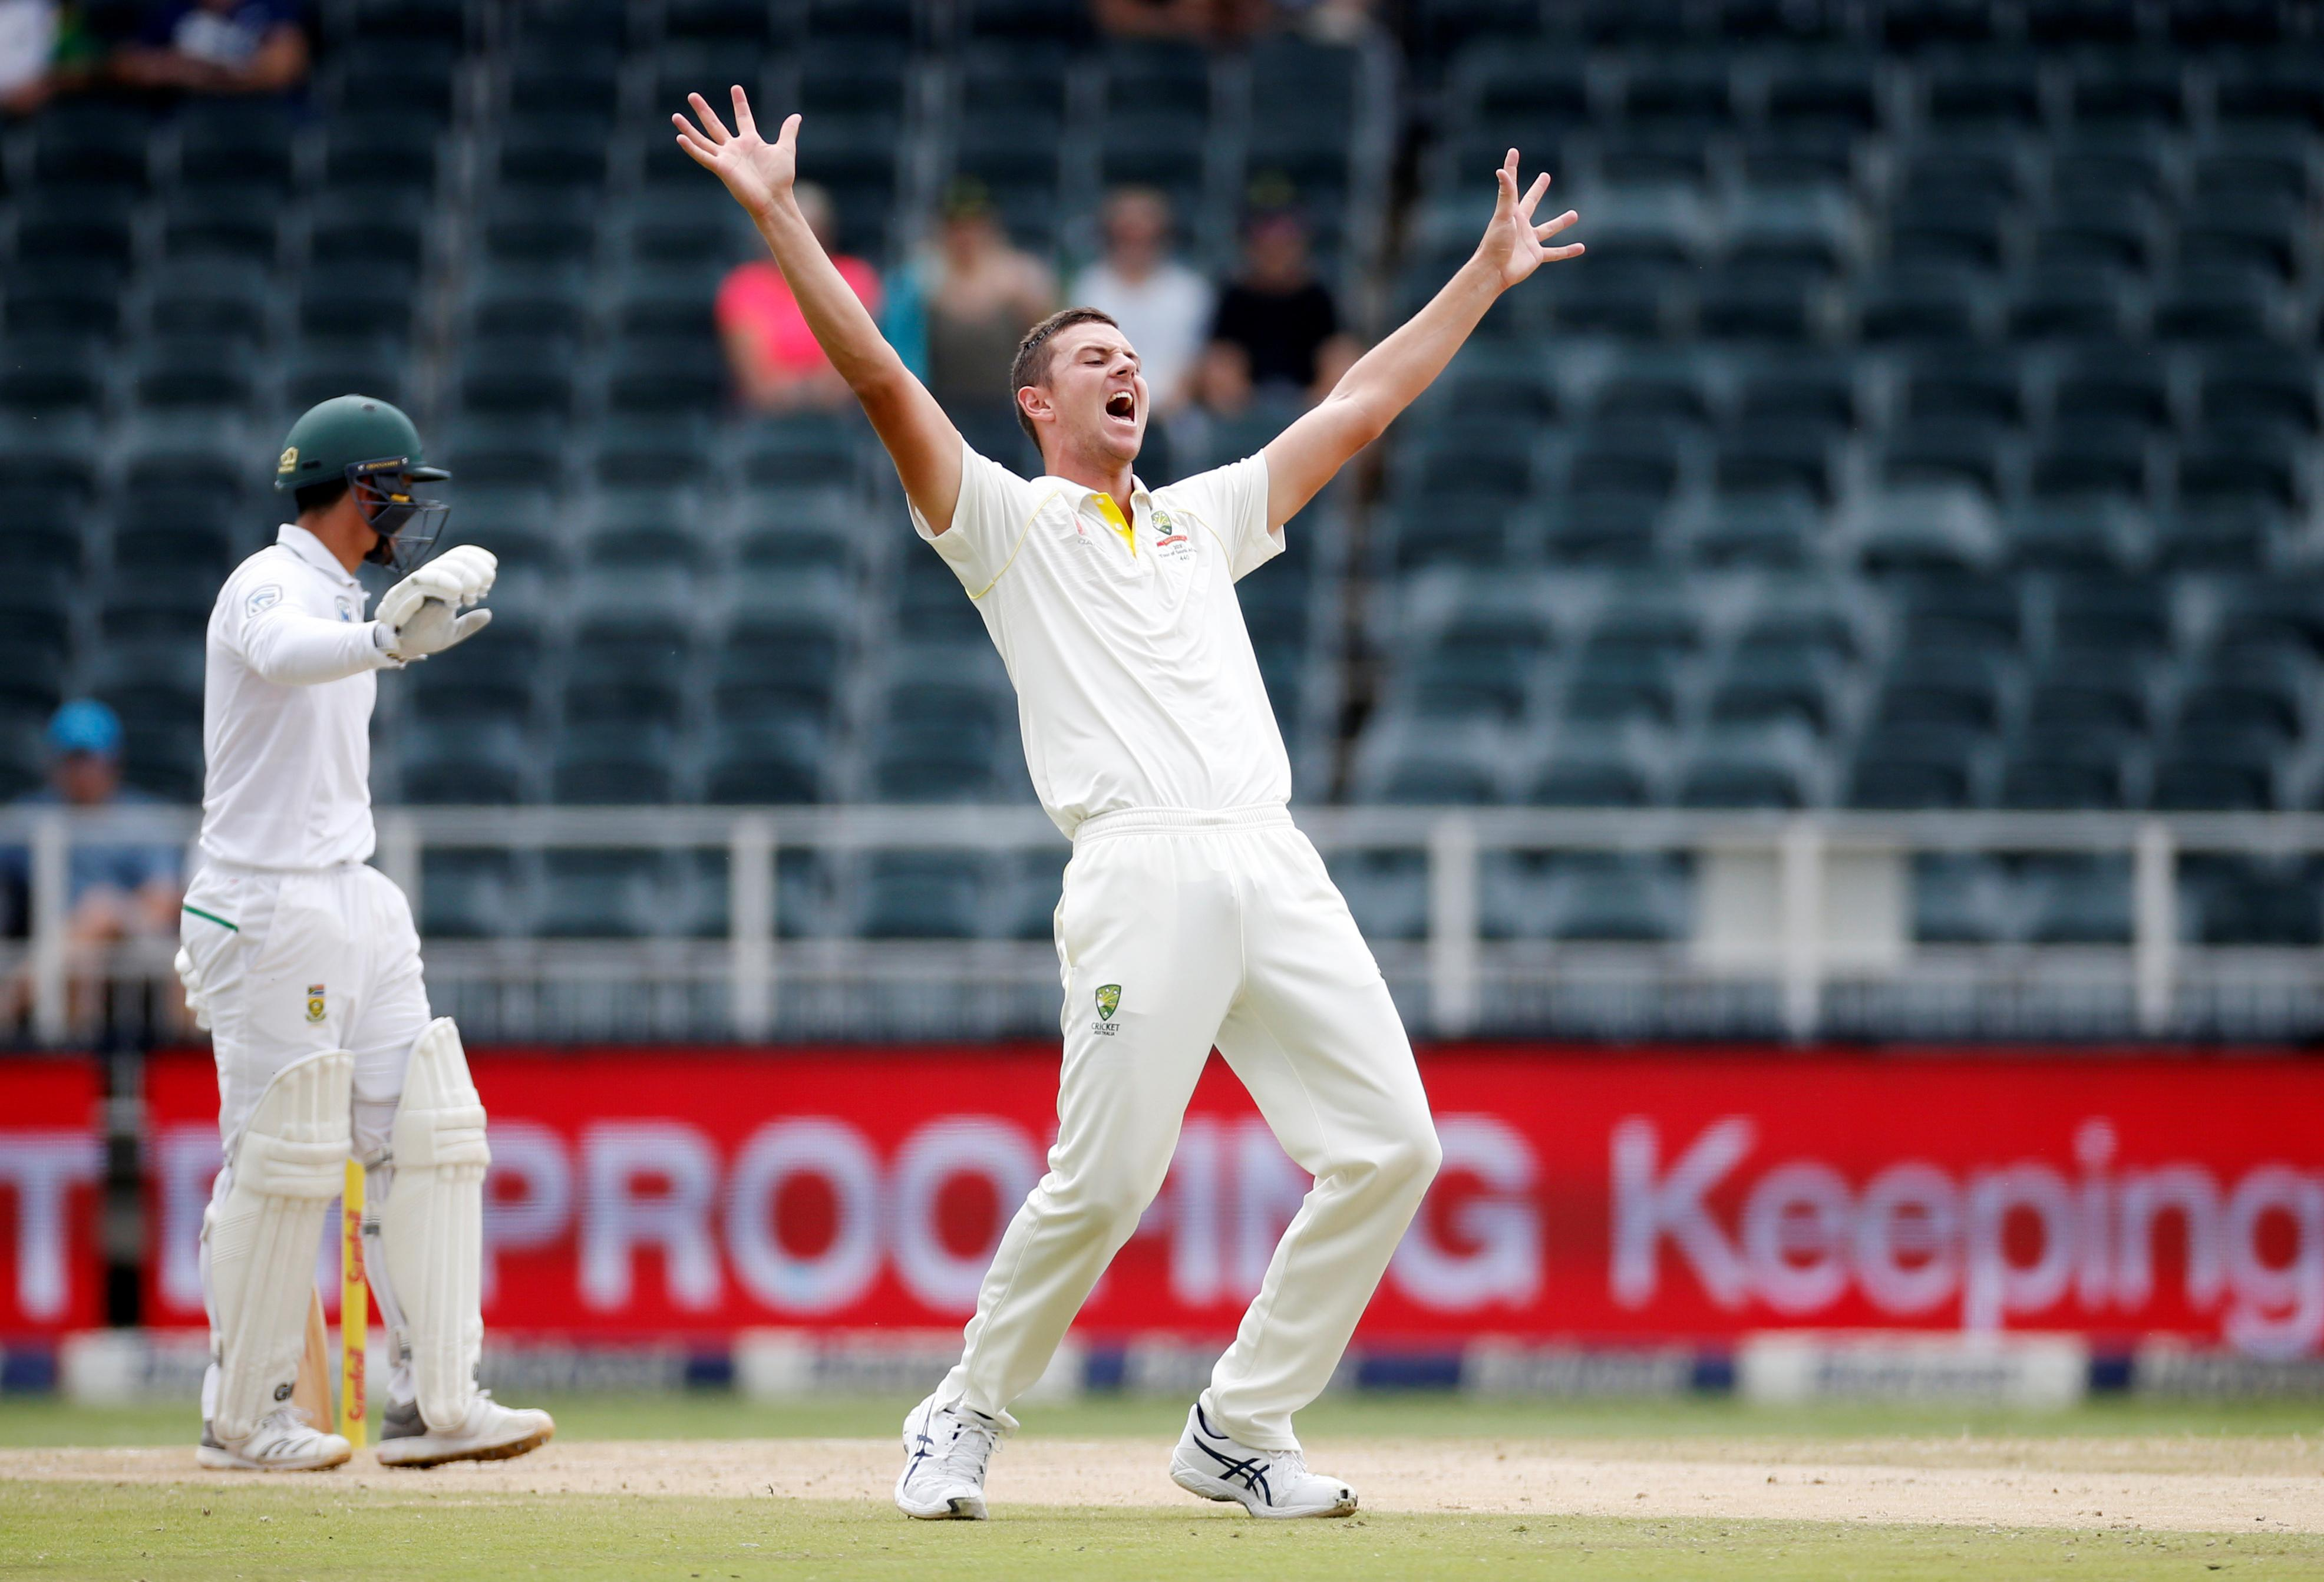 Hazlewood gets the nod for Australia in second test at Lord's